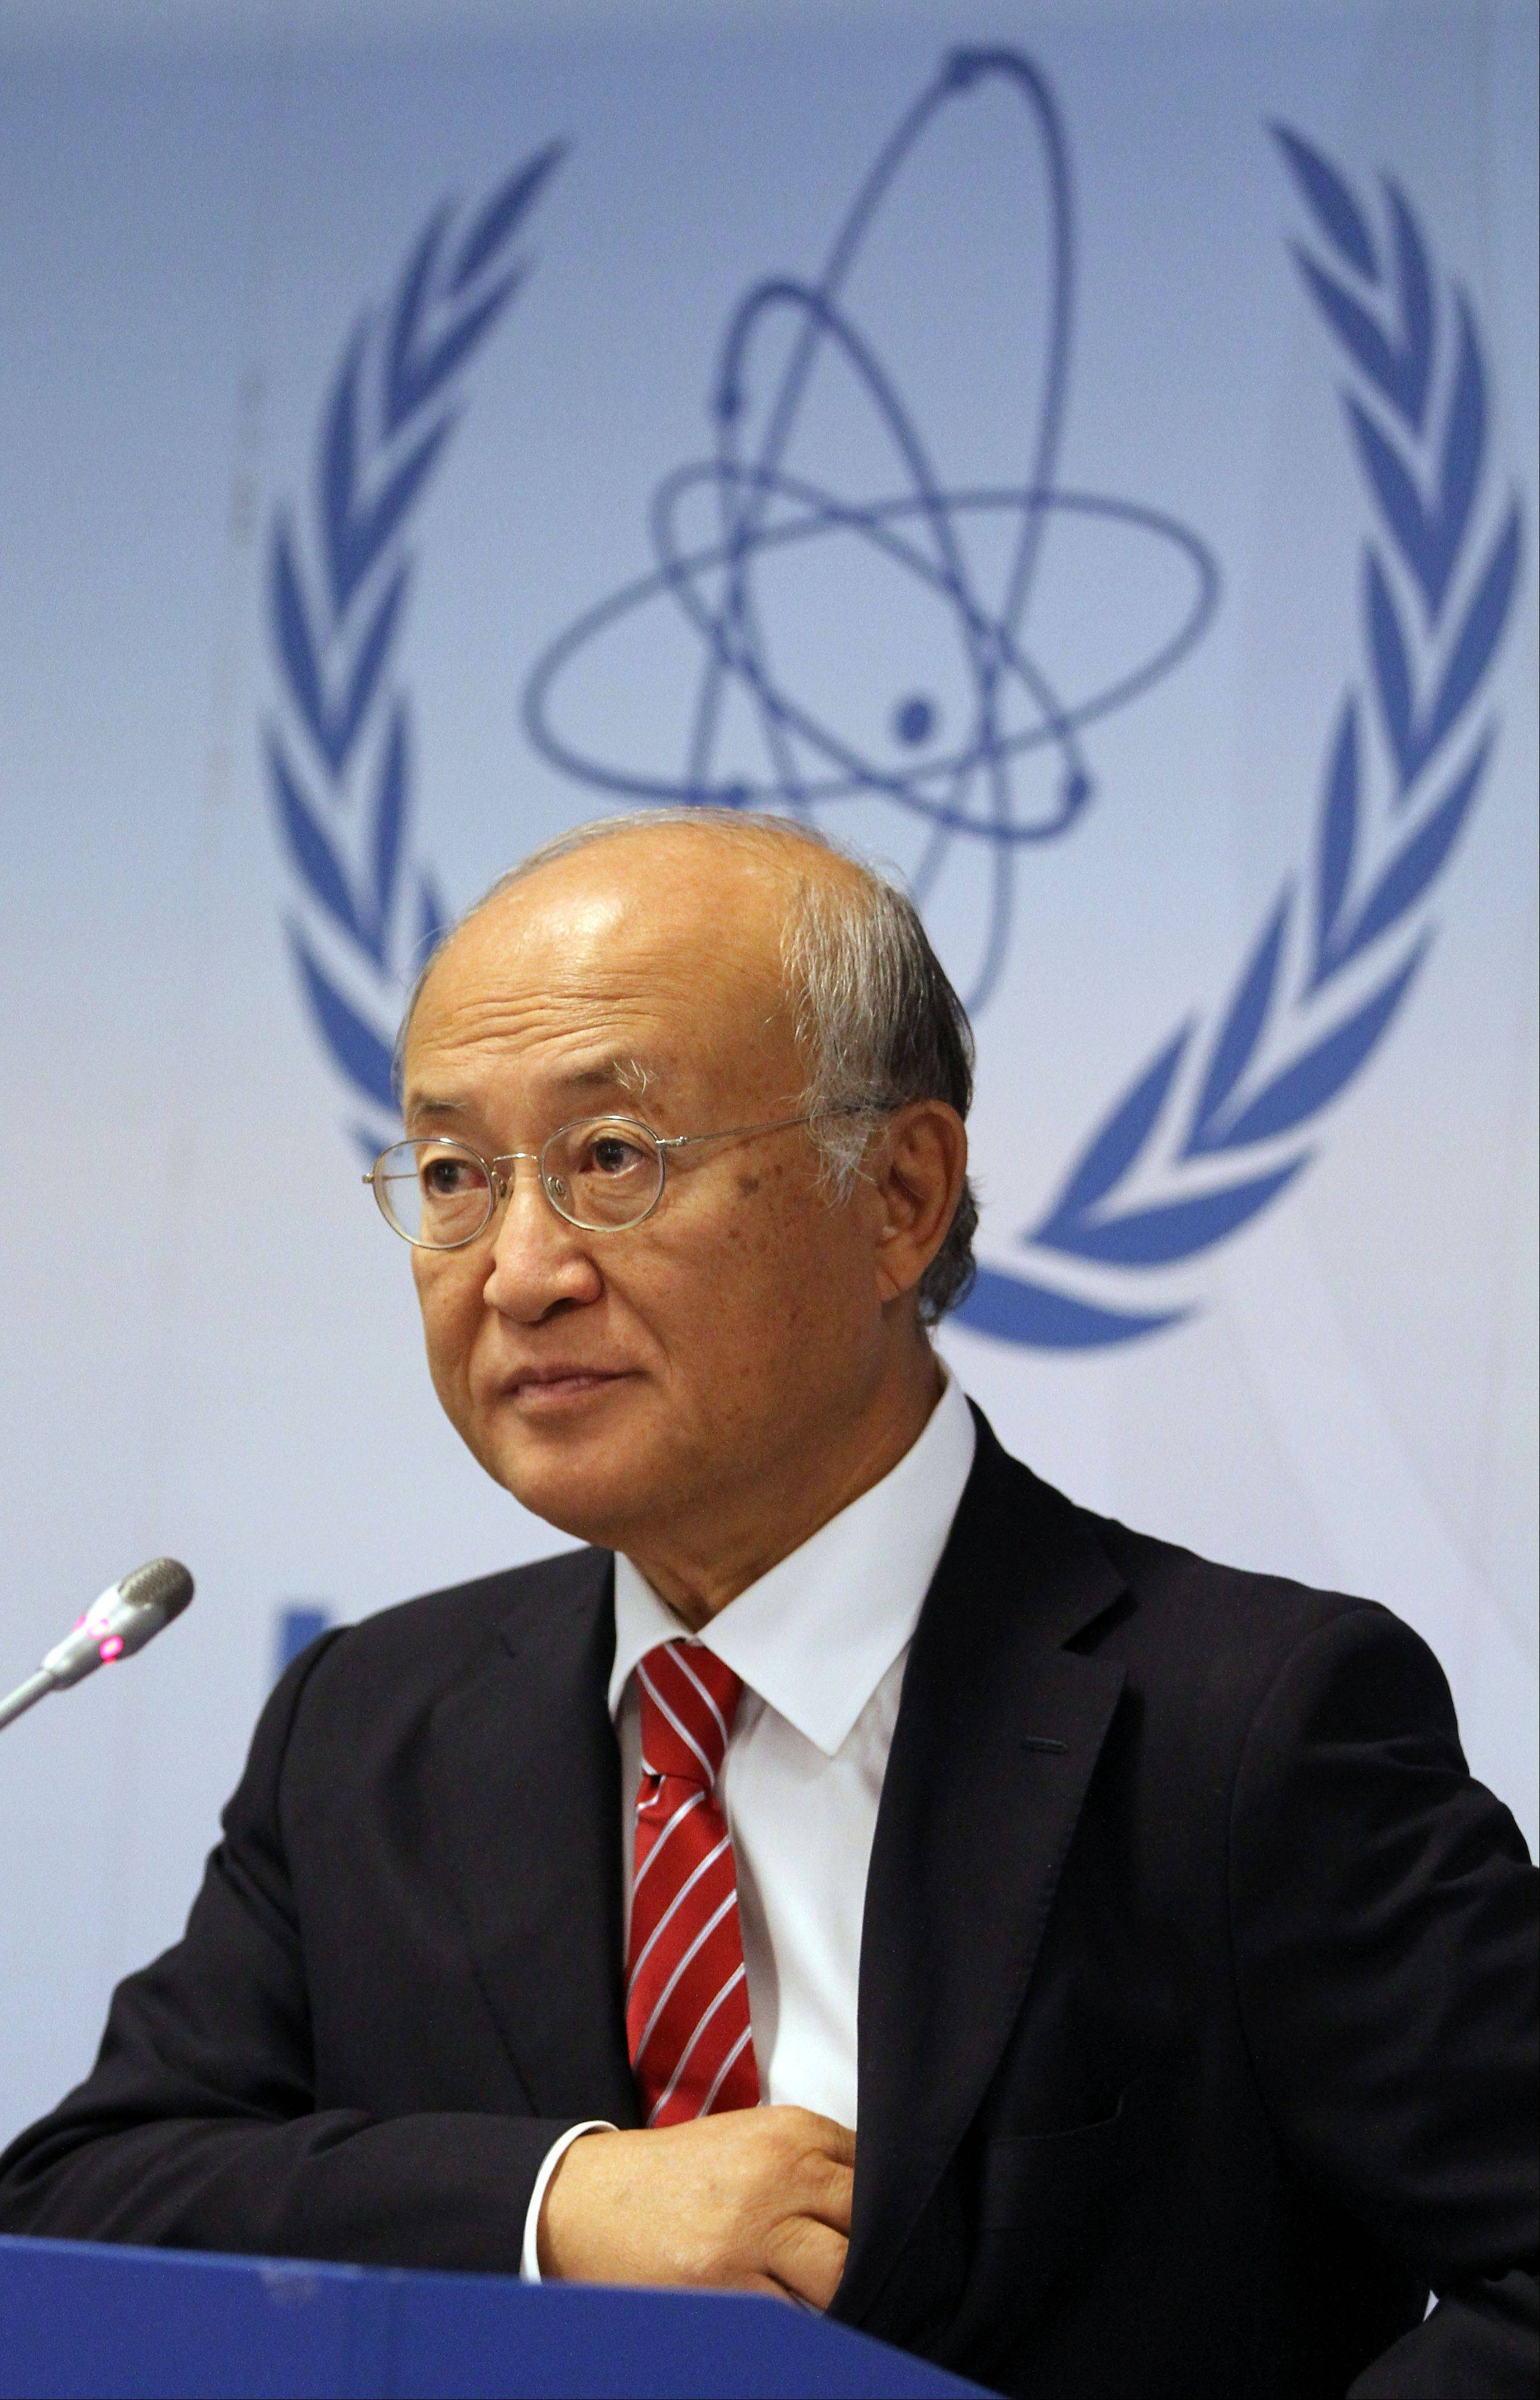 Director General of the International Atomic Energy Agency Yukiya Amano of Japan made an unusually strong demand Monday for Iran to cooperate with an investigation into suspected secret work on nuclear weapons.